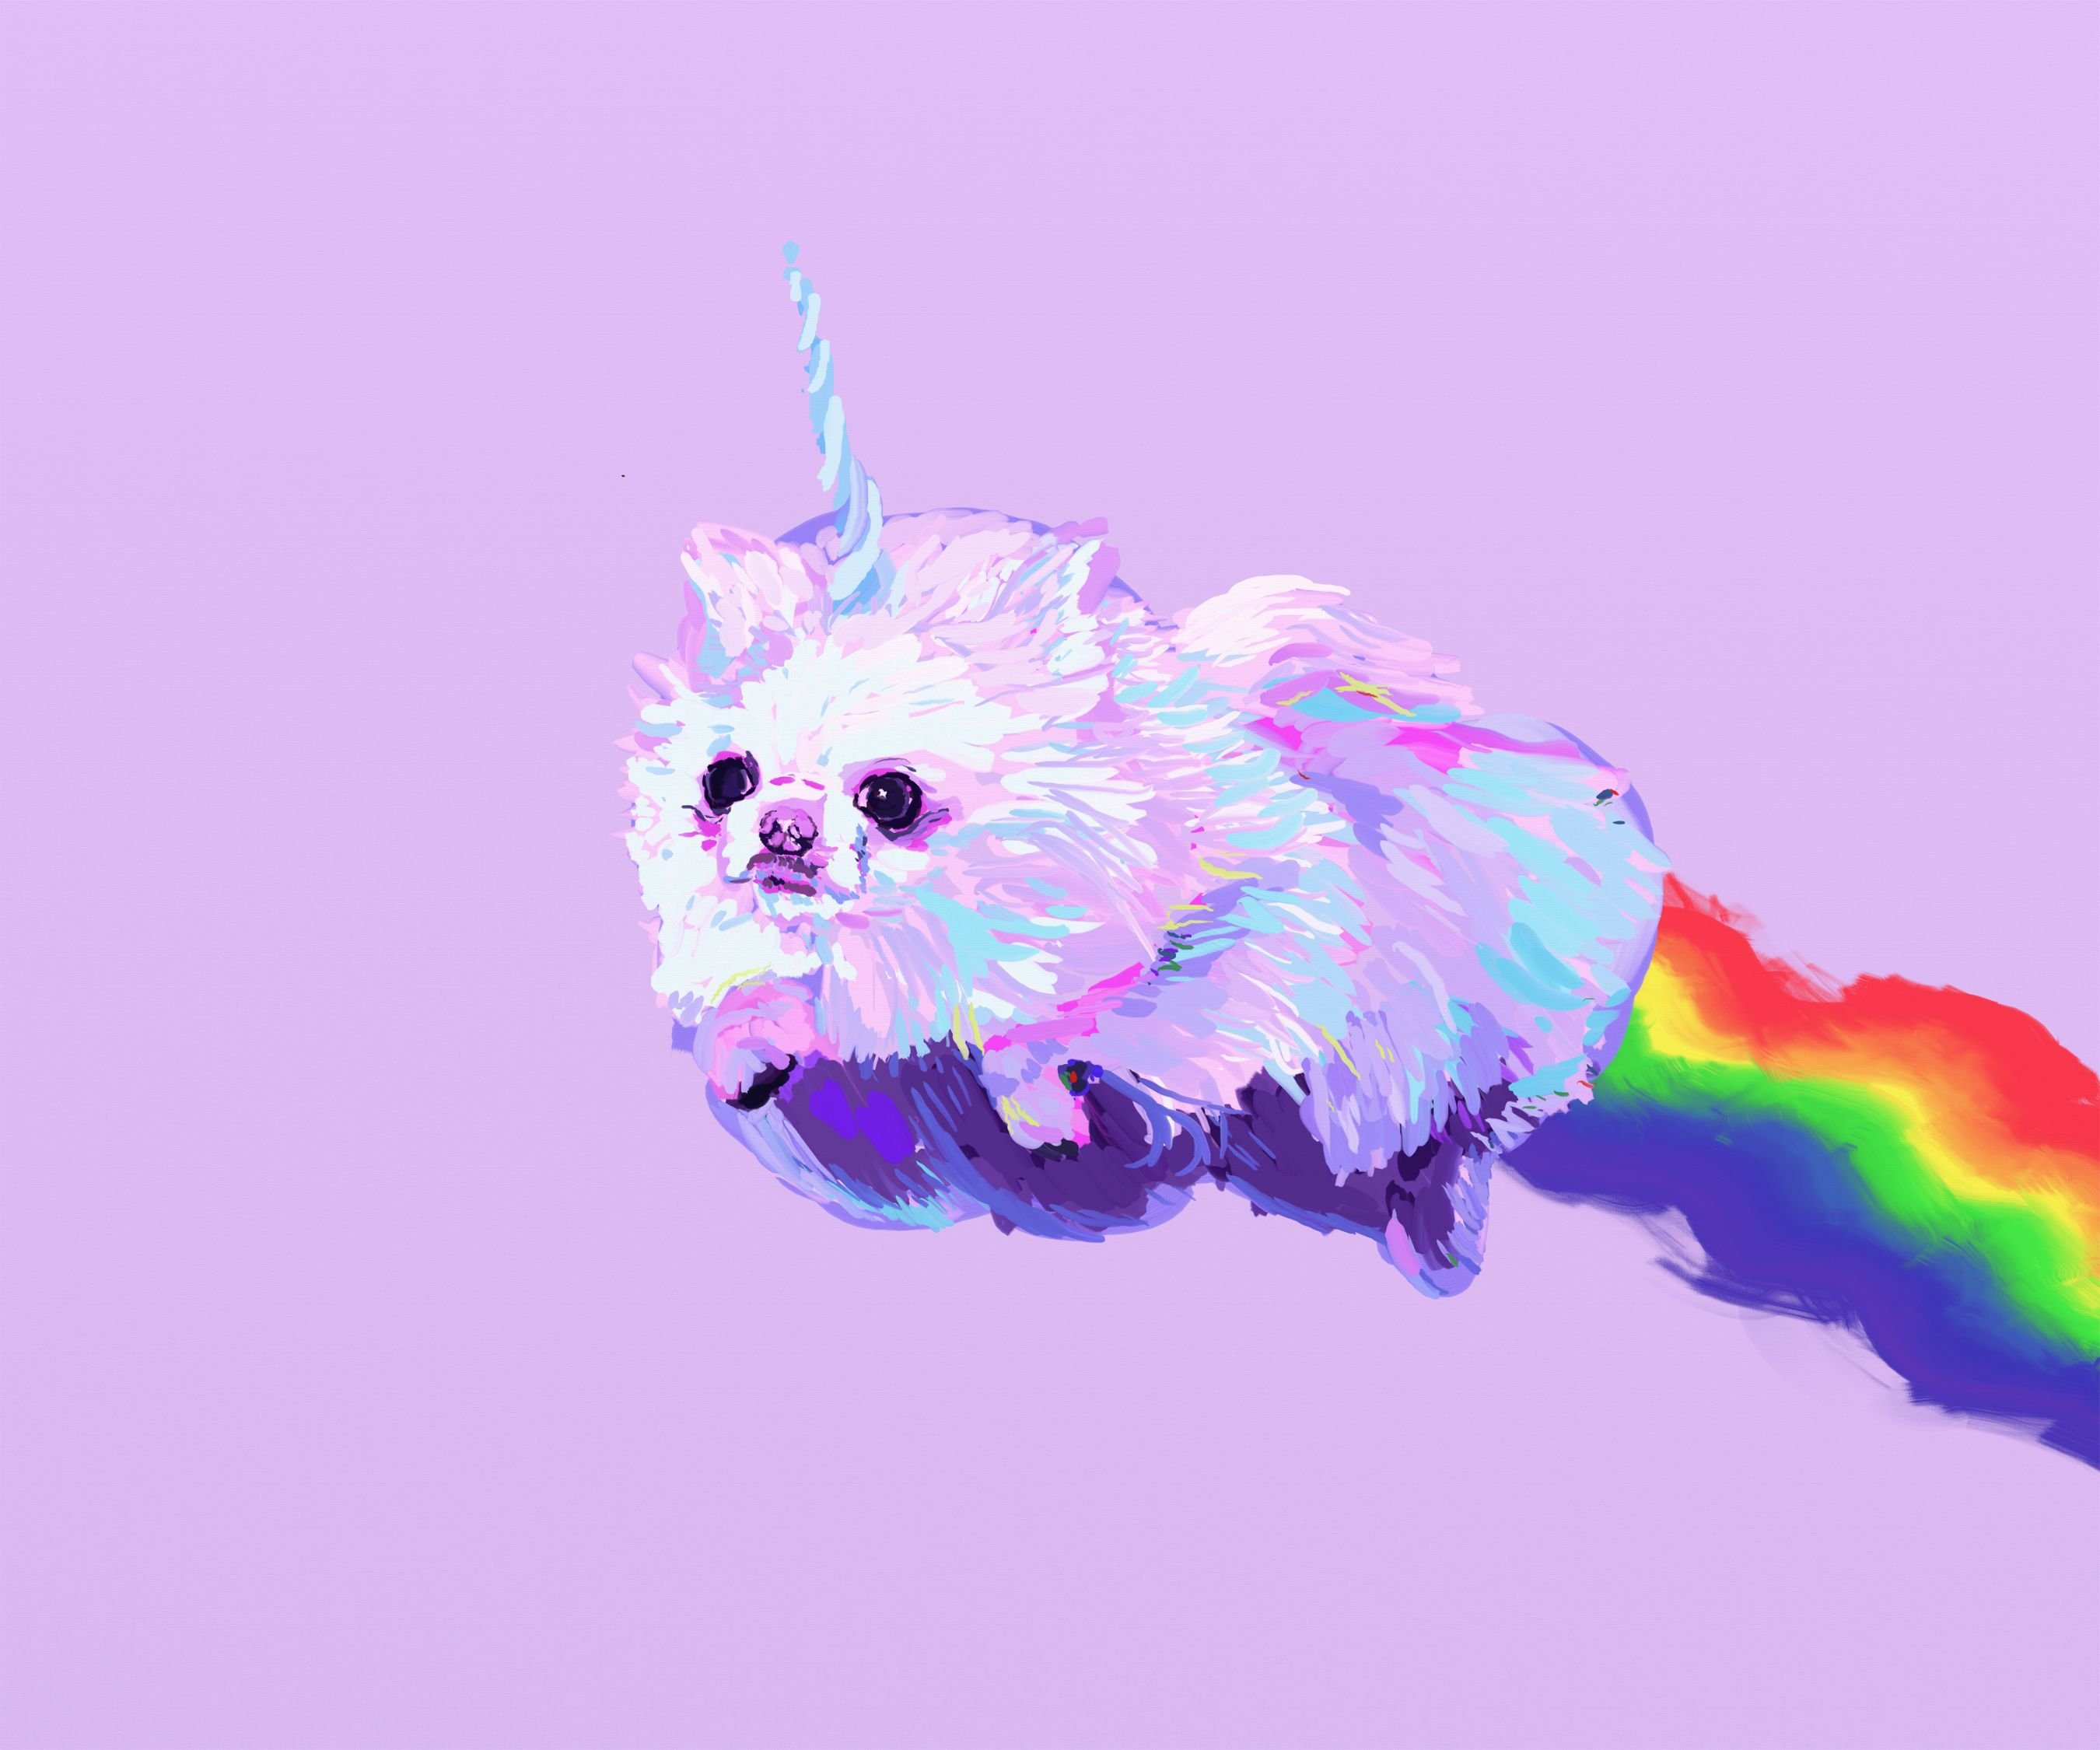 Unicorn Wallpapers Background Is Cool Wallpapers